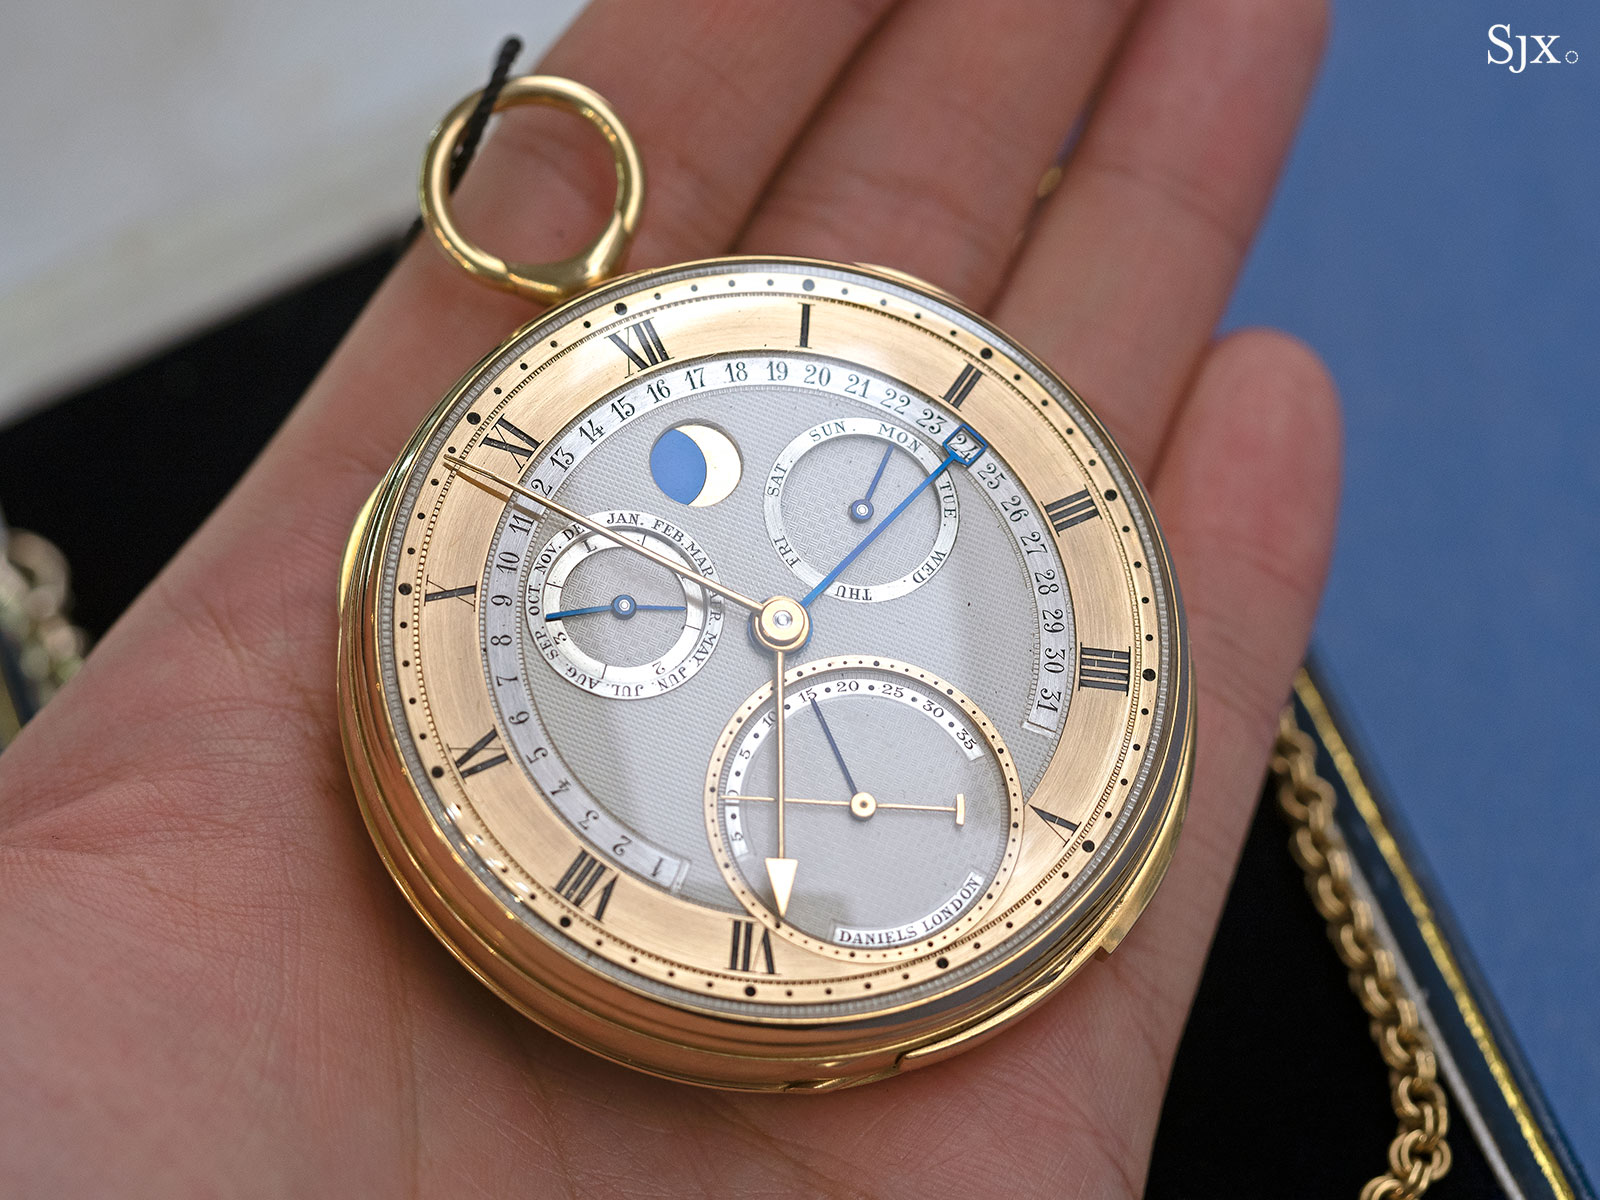 George Daniels Grand Complication pocket watch 28